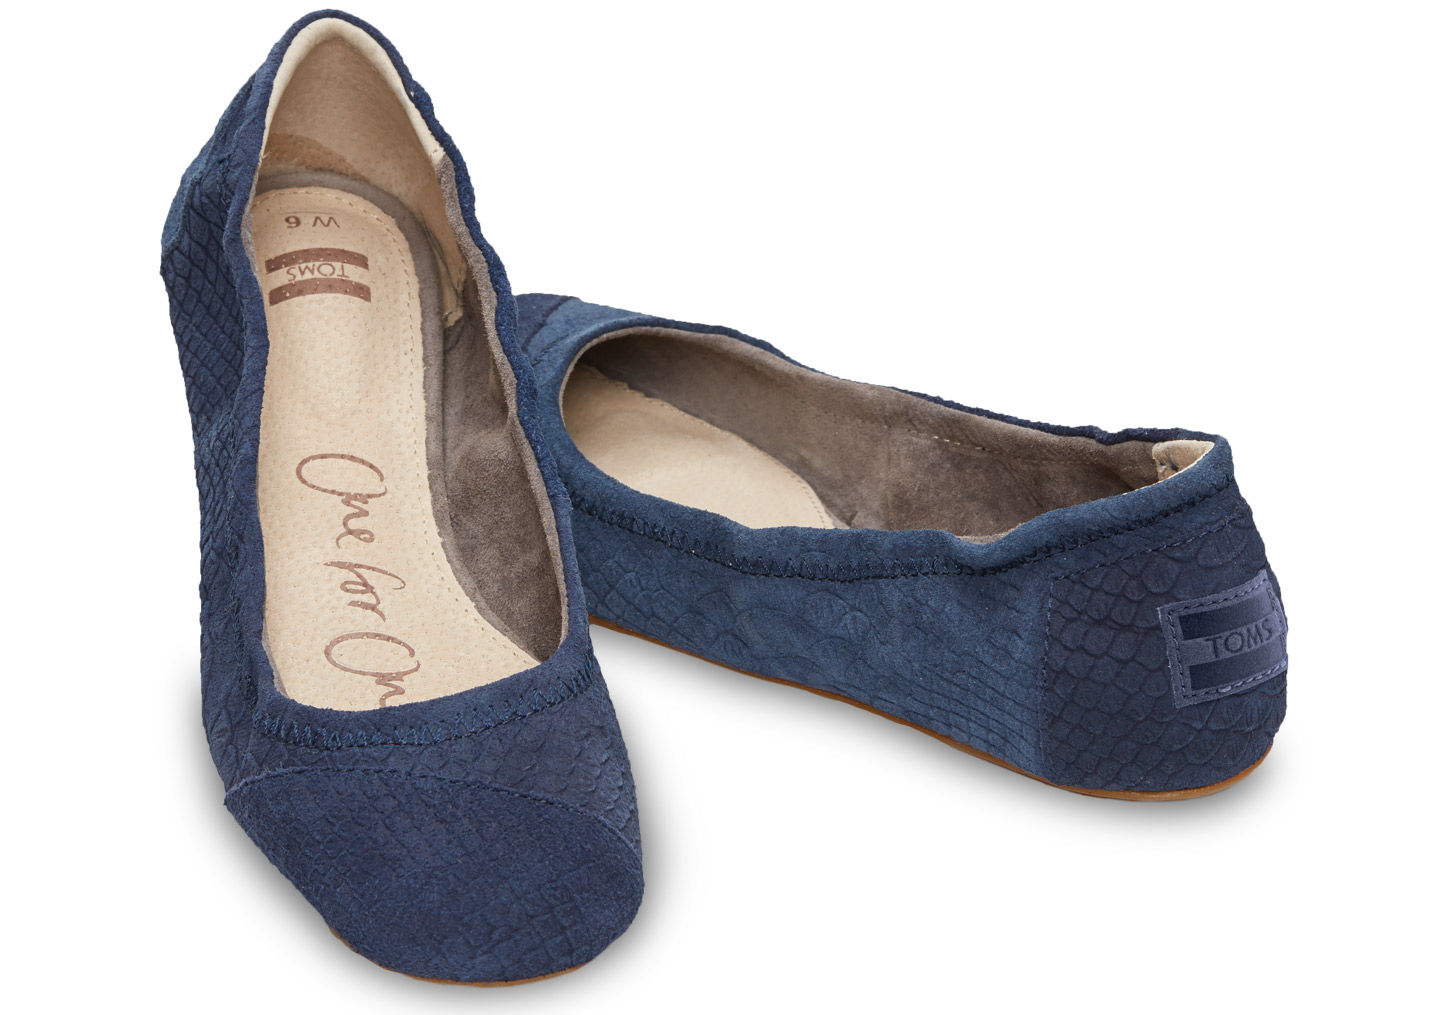 Lyst - TOMS Blue Suede Snake Women s Ballet Flat in Blue 0ab9947be